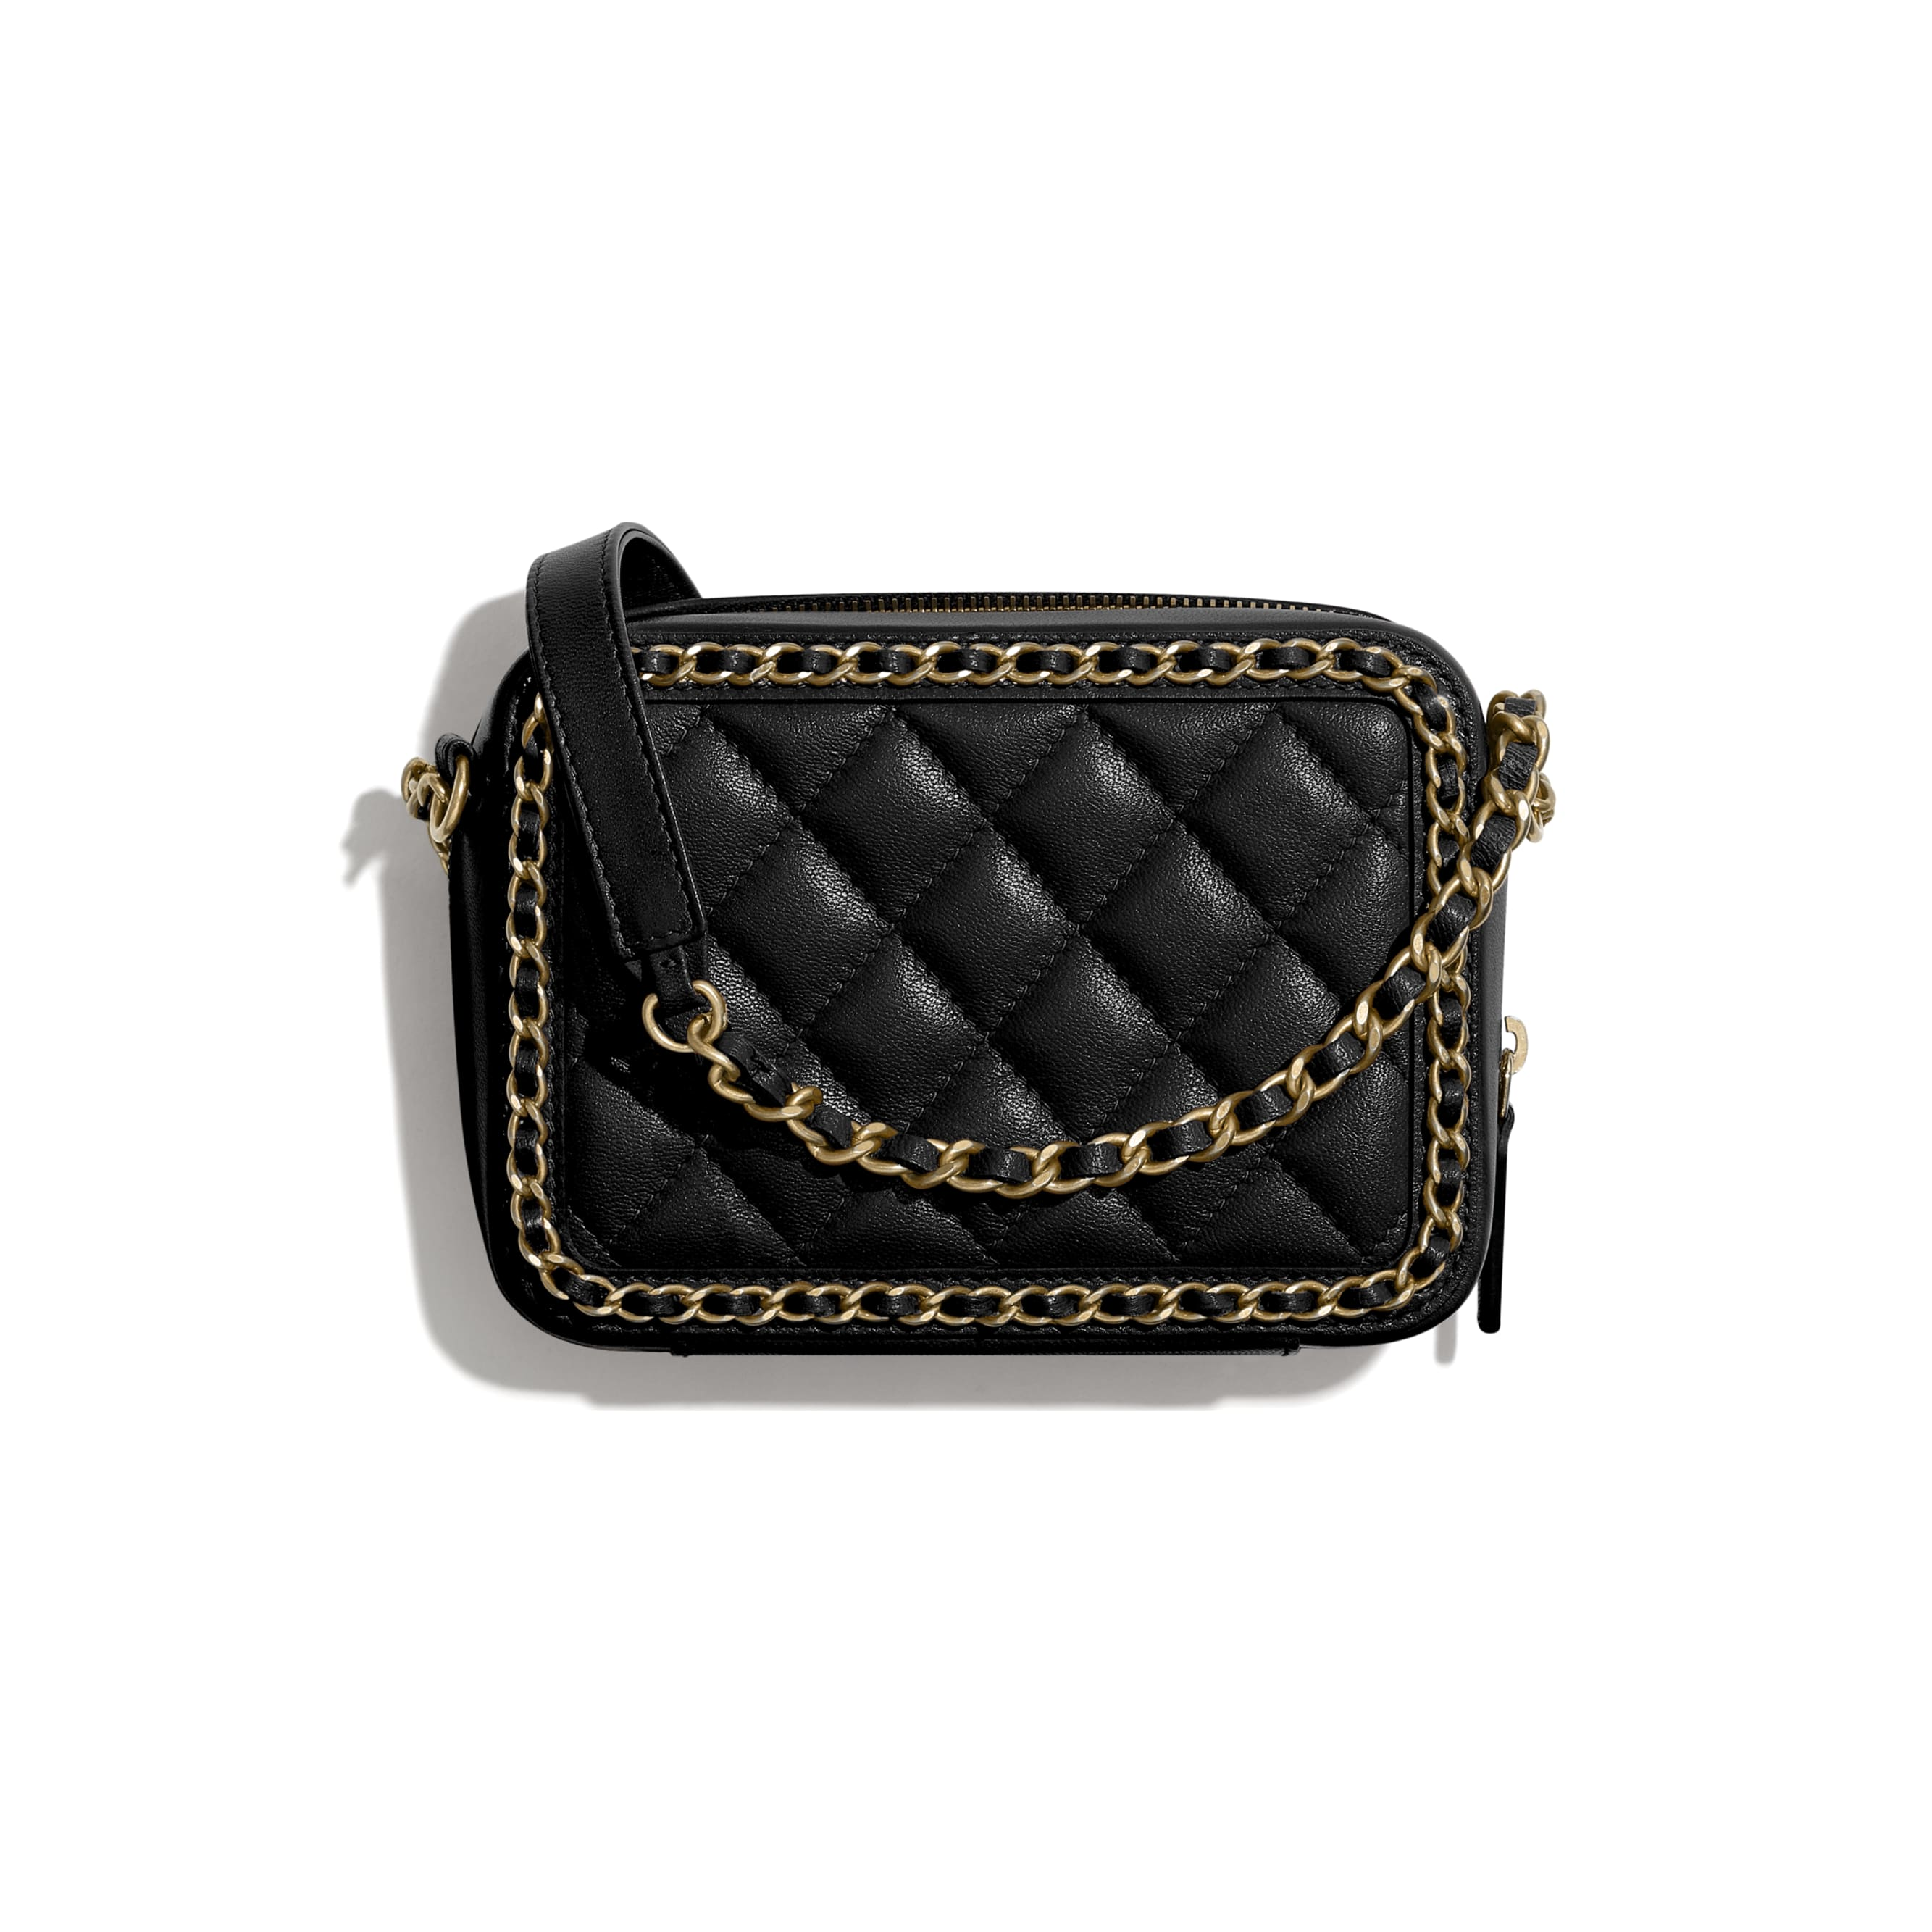 Clutch With Chain - Black - Goatskin & Gold-Tone Metal - CHANEL - Alternative view - see standard sized version